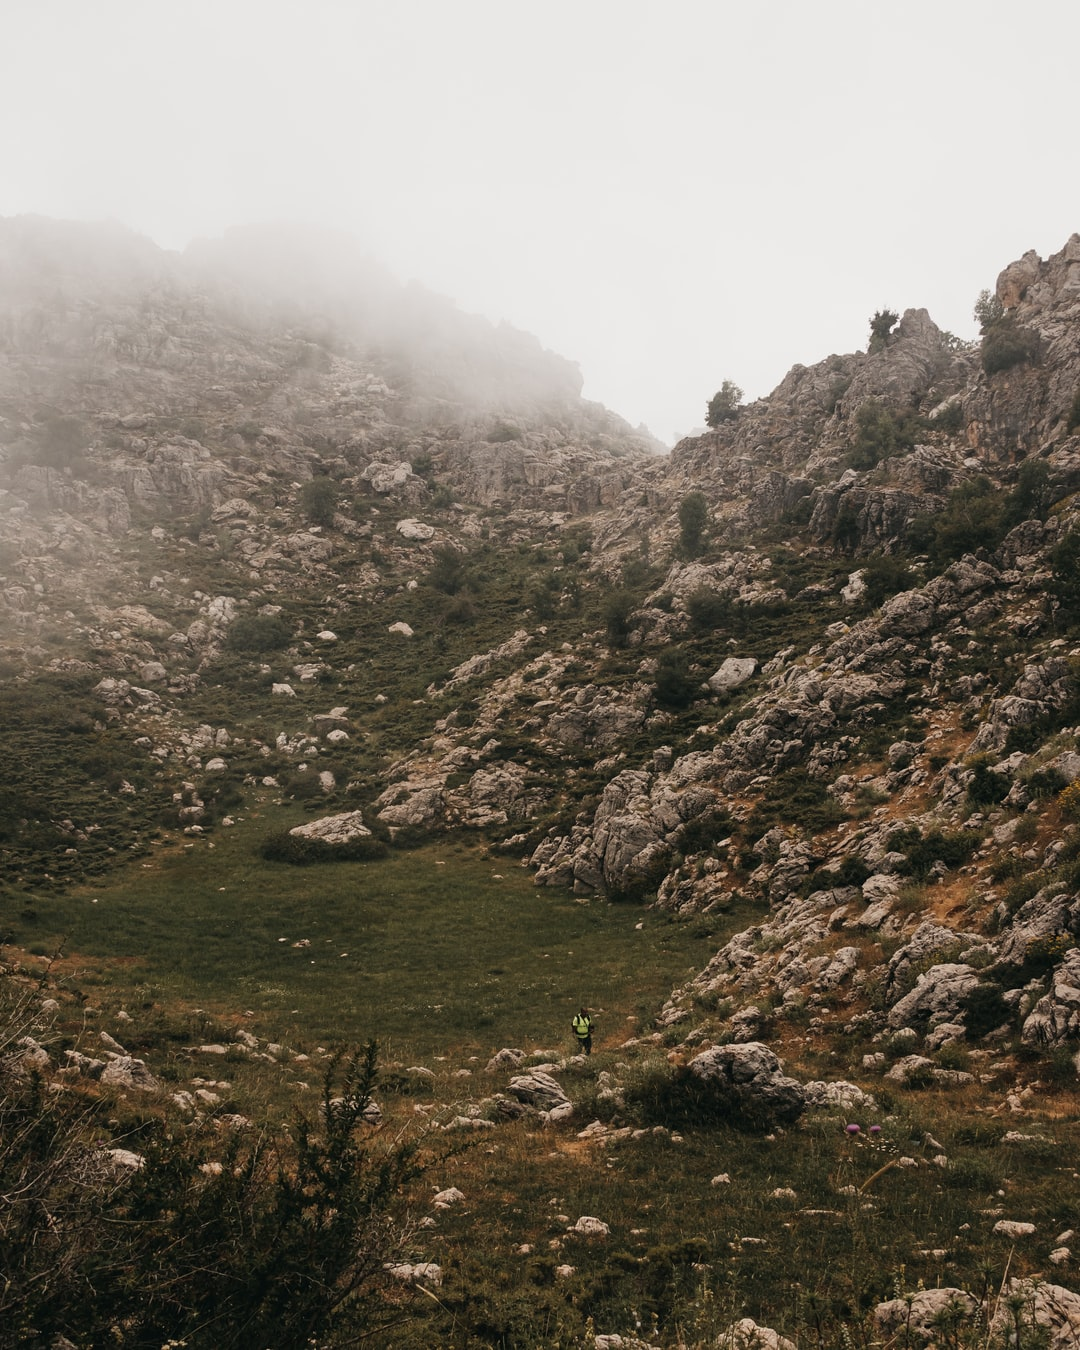 Hiking in Douma, Lebanon with fog covering the land.